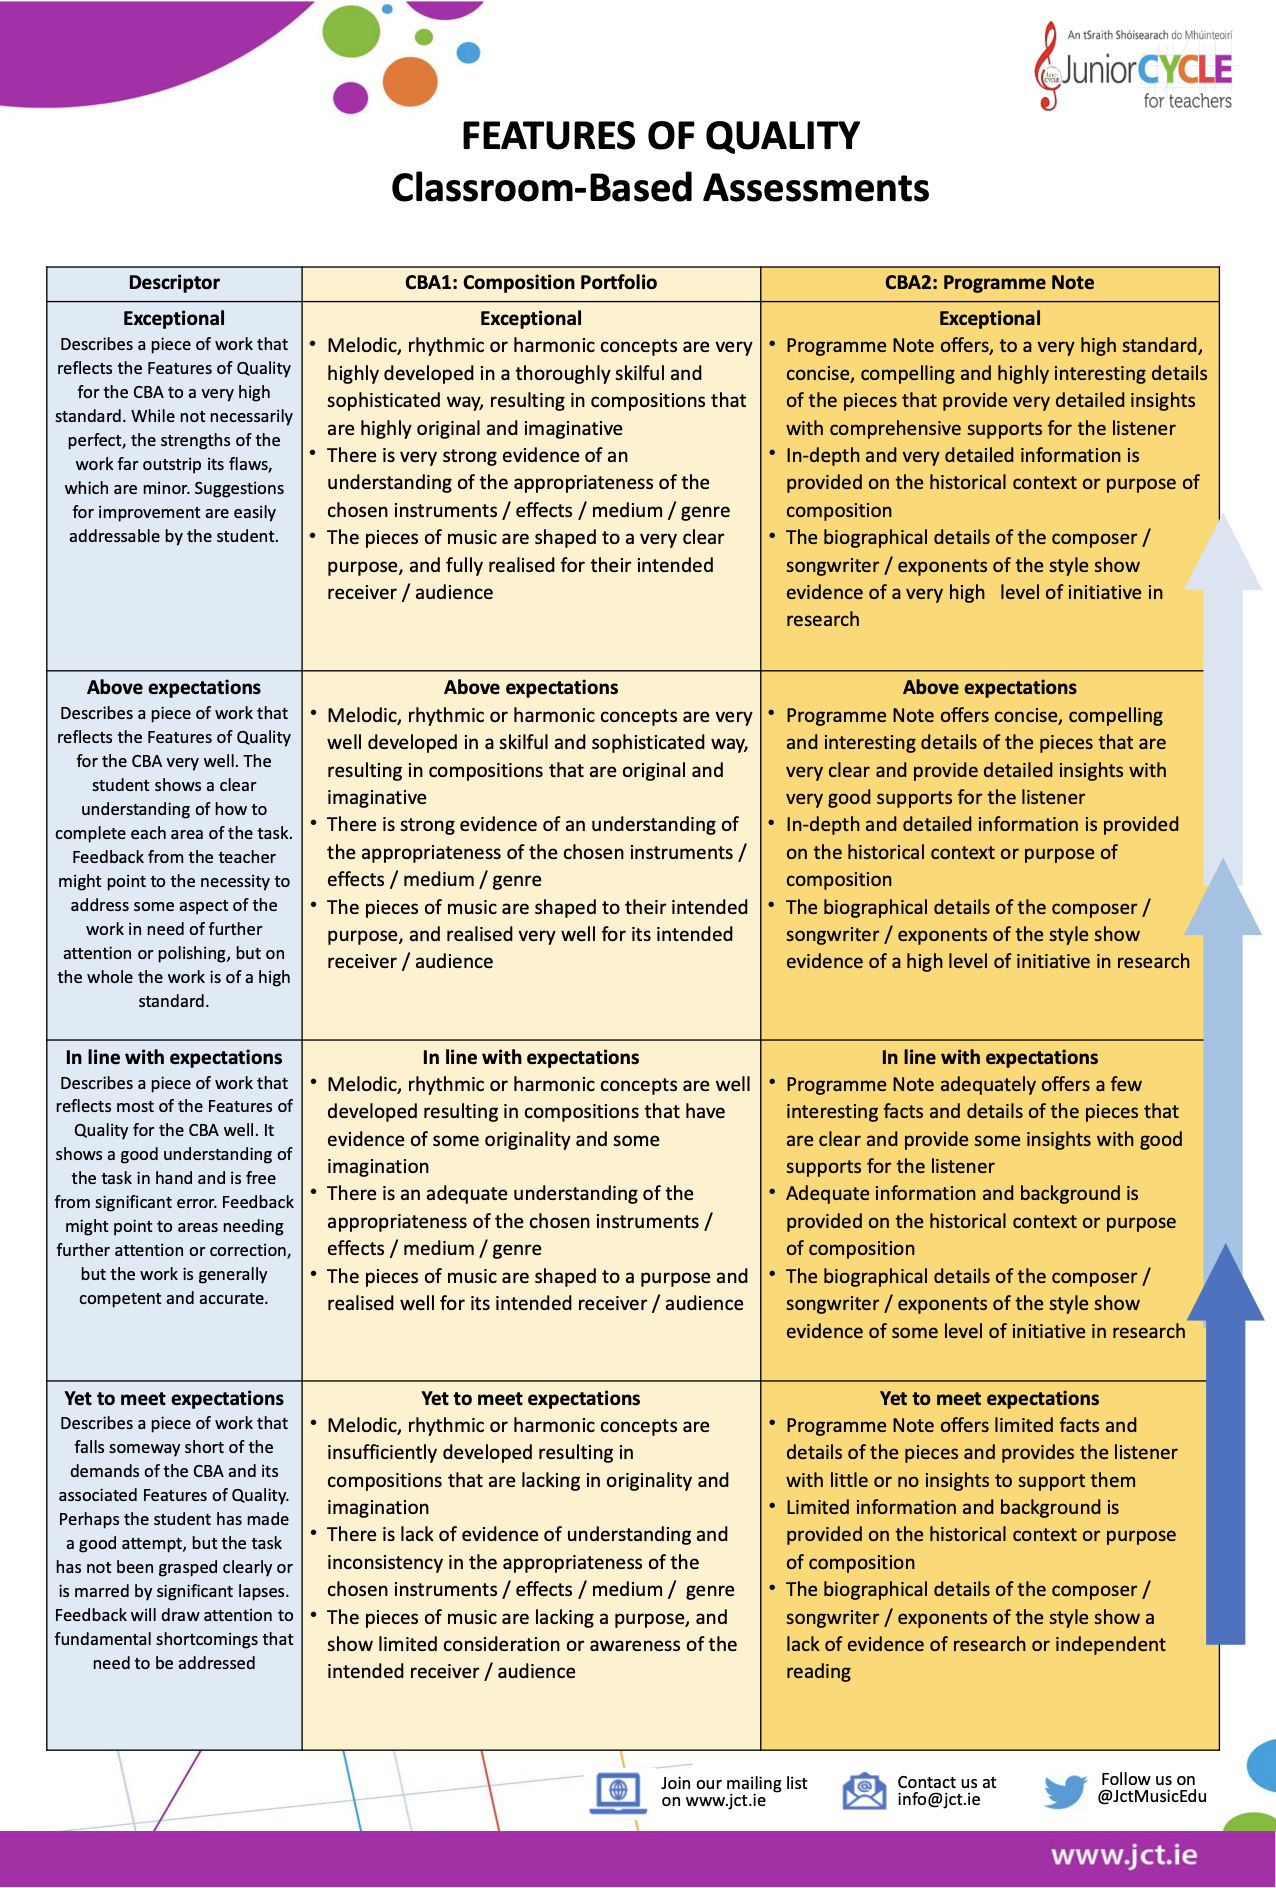 Features of Quality: Classroom-Based Assessments